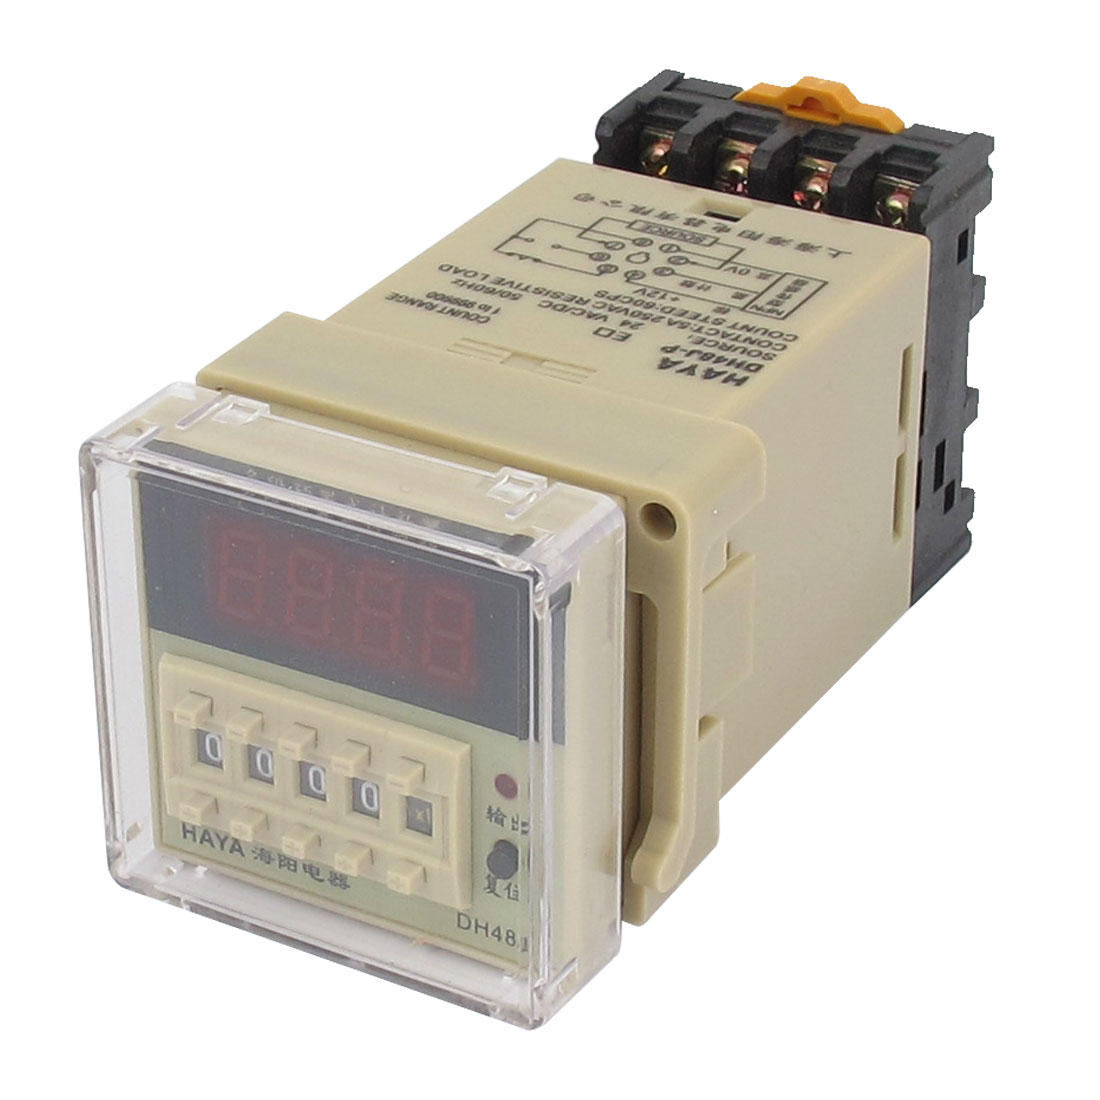 DH48J-P AC/DC 24V 50/60Hz 1-999900 8 Terminals LED Display Digital Counter Timer Delay Relay